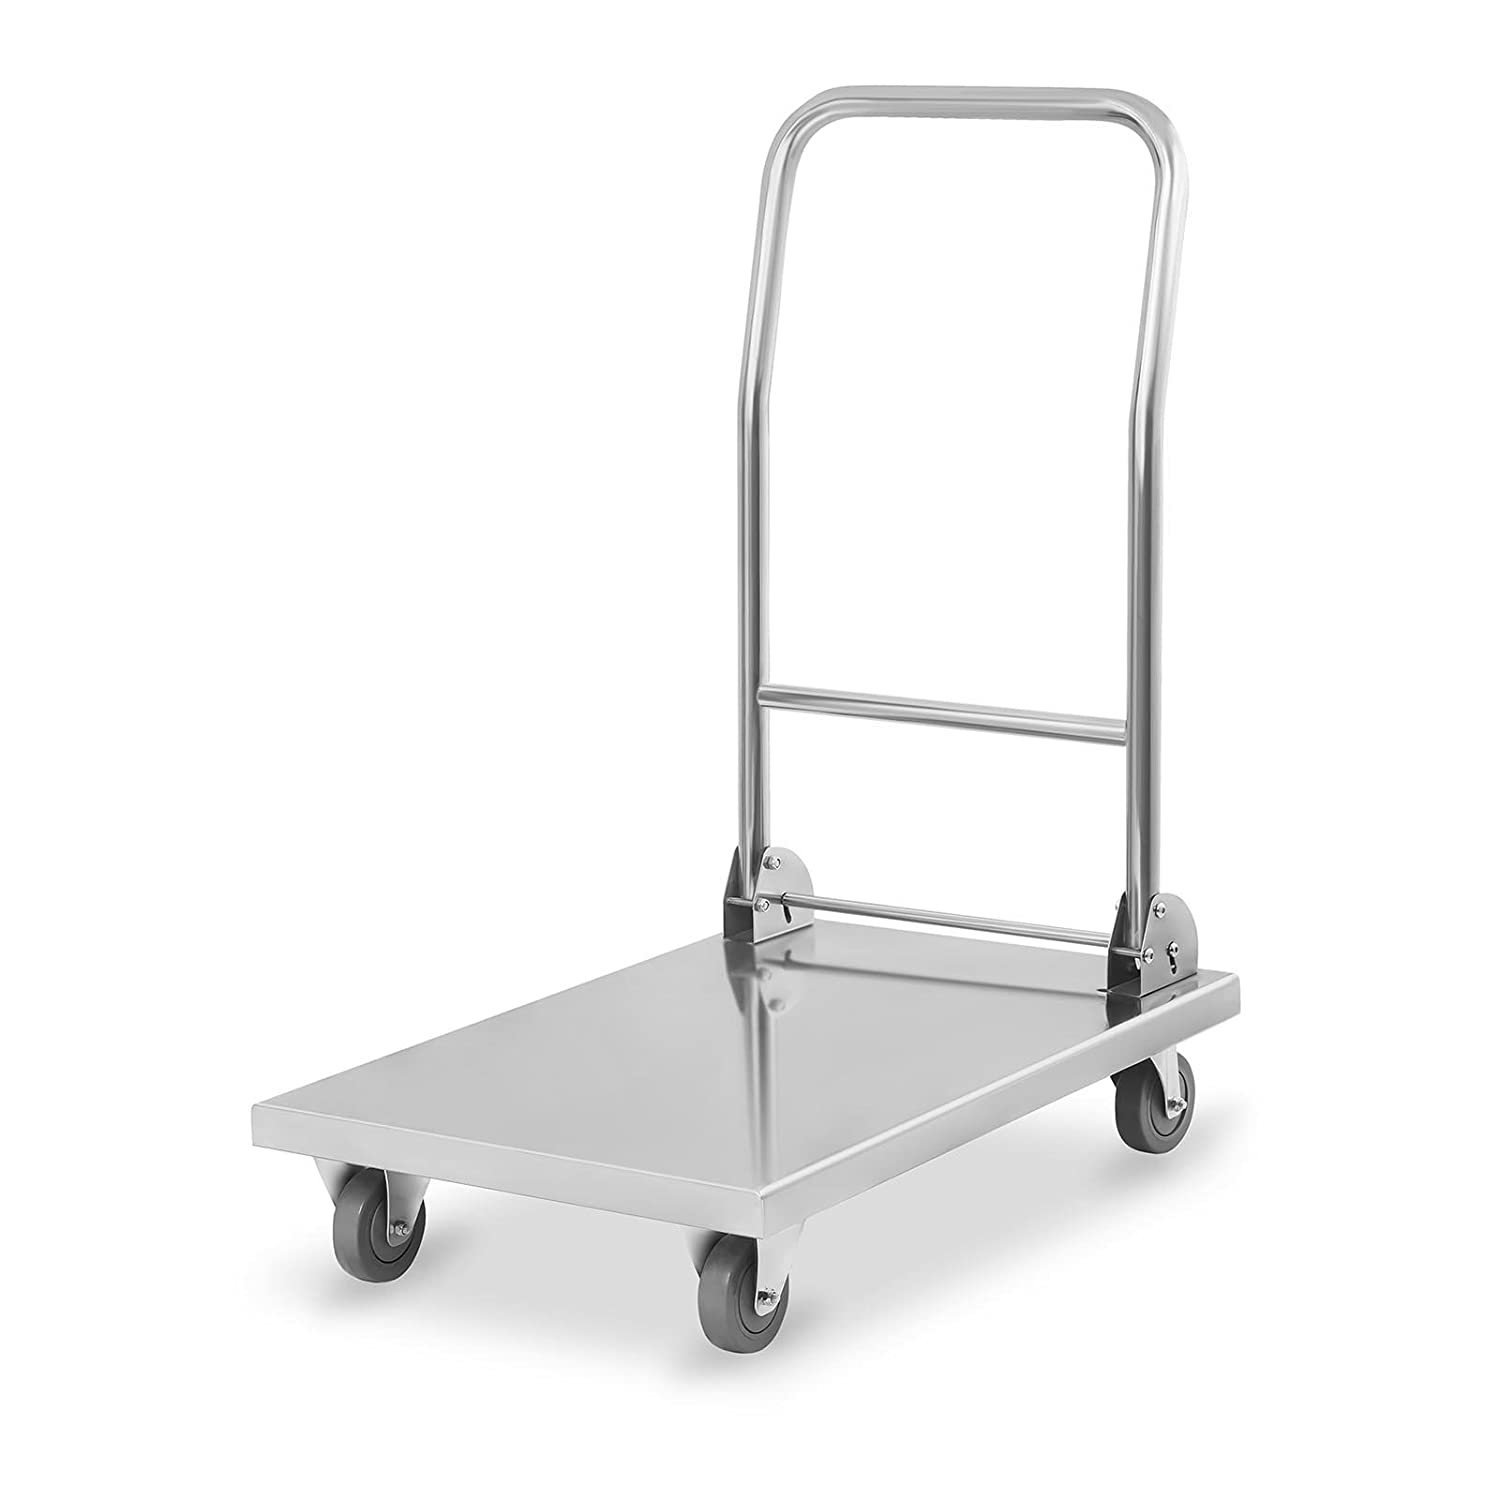 Royal Catering RCFT-1.1/ Platform Truck Folding Trolley Cart Stainless Steel 400 kg, Storage Surface 82 x 52 cm, Rubber Wheels